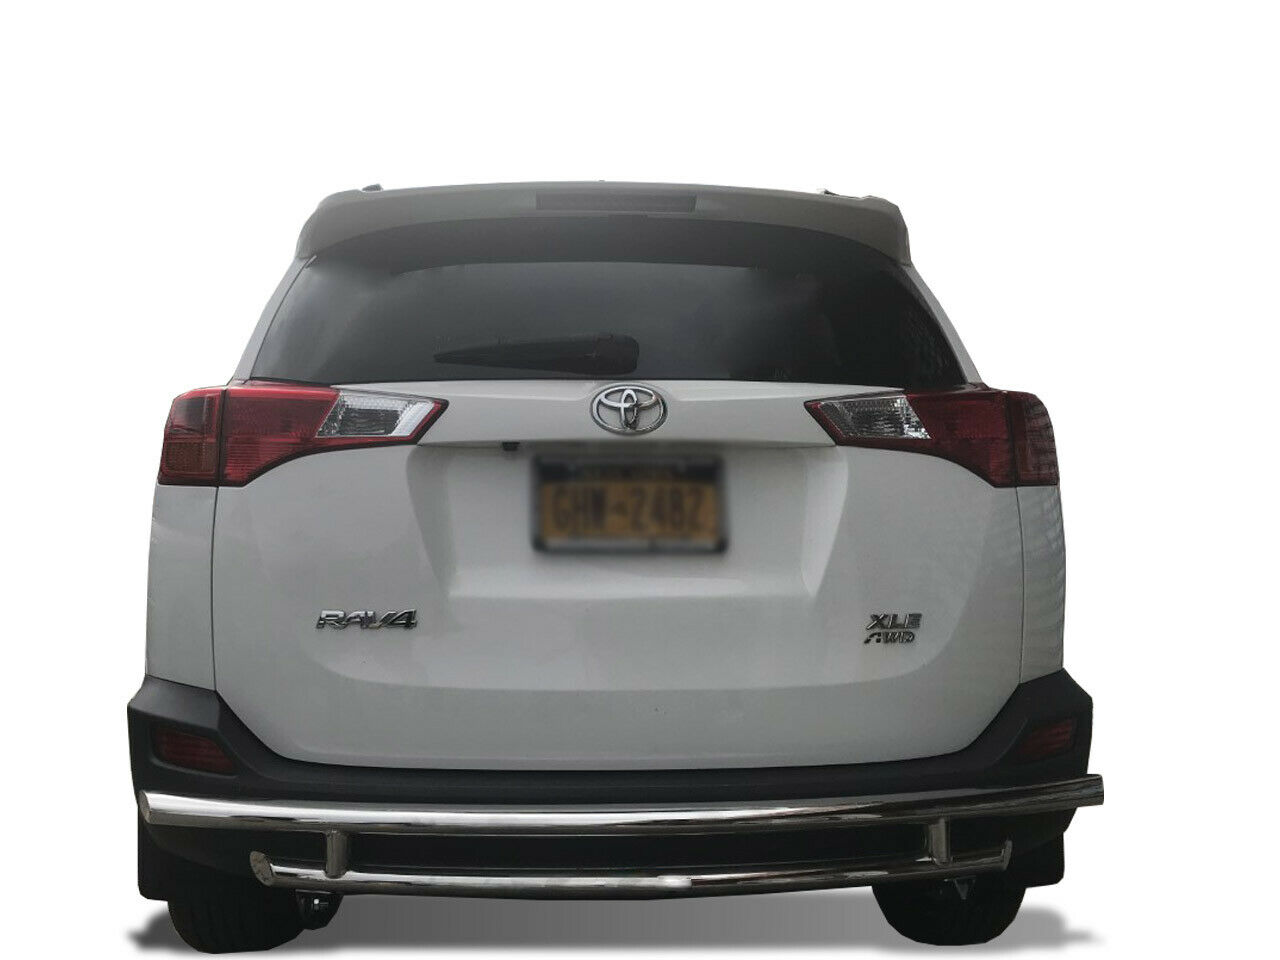 APU 2006-2018 Toyota RAV4 Stainless Rear Bumper Guard Protector Double Layers